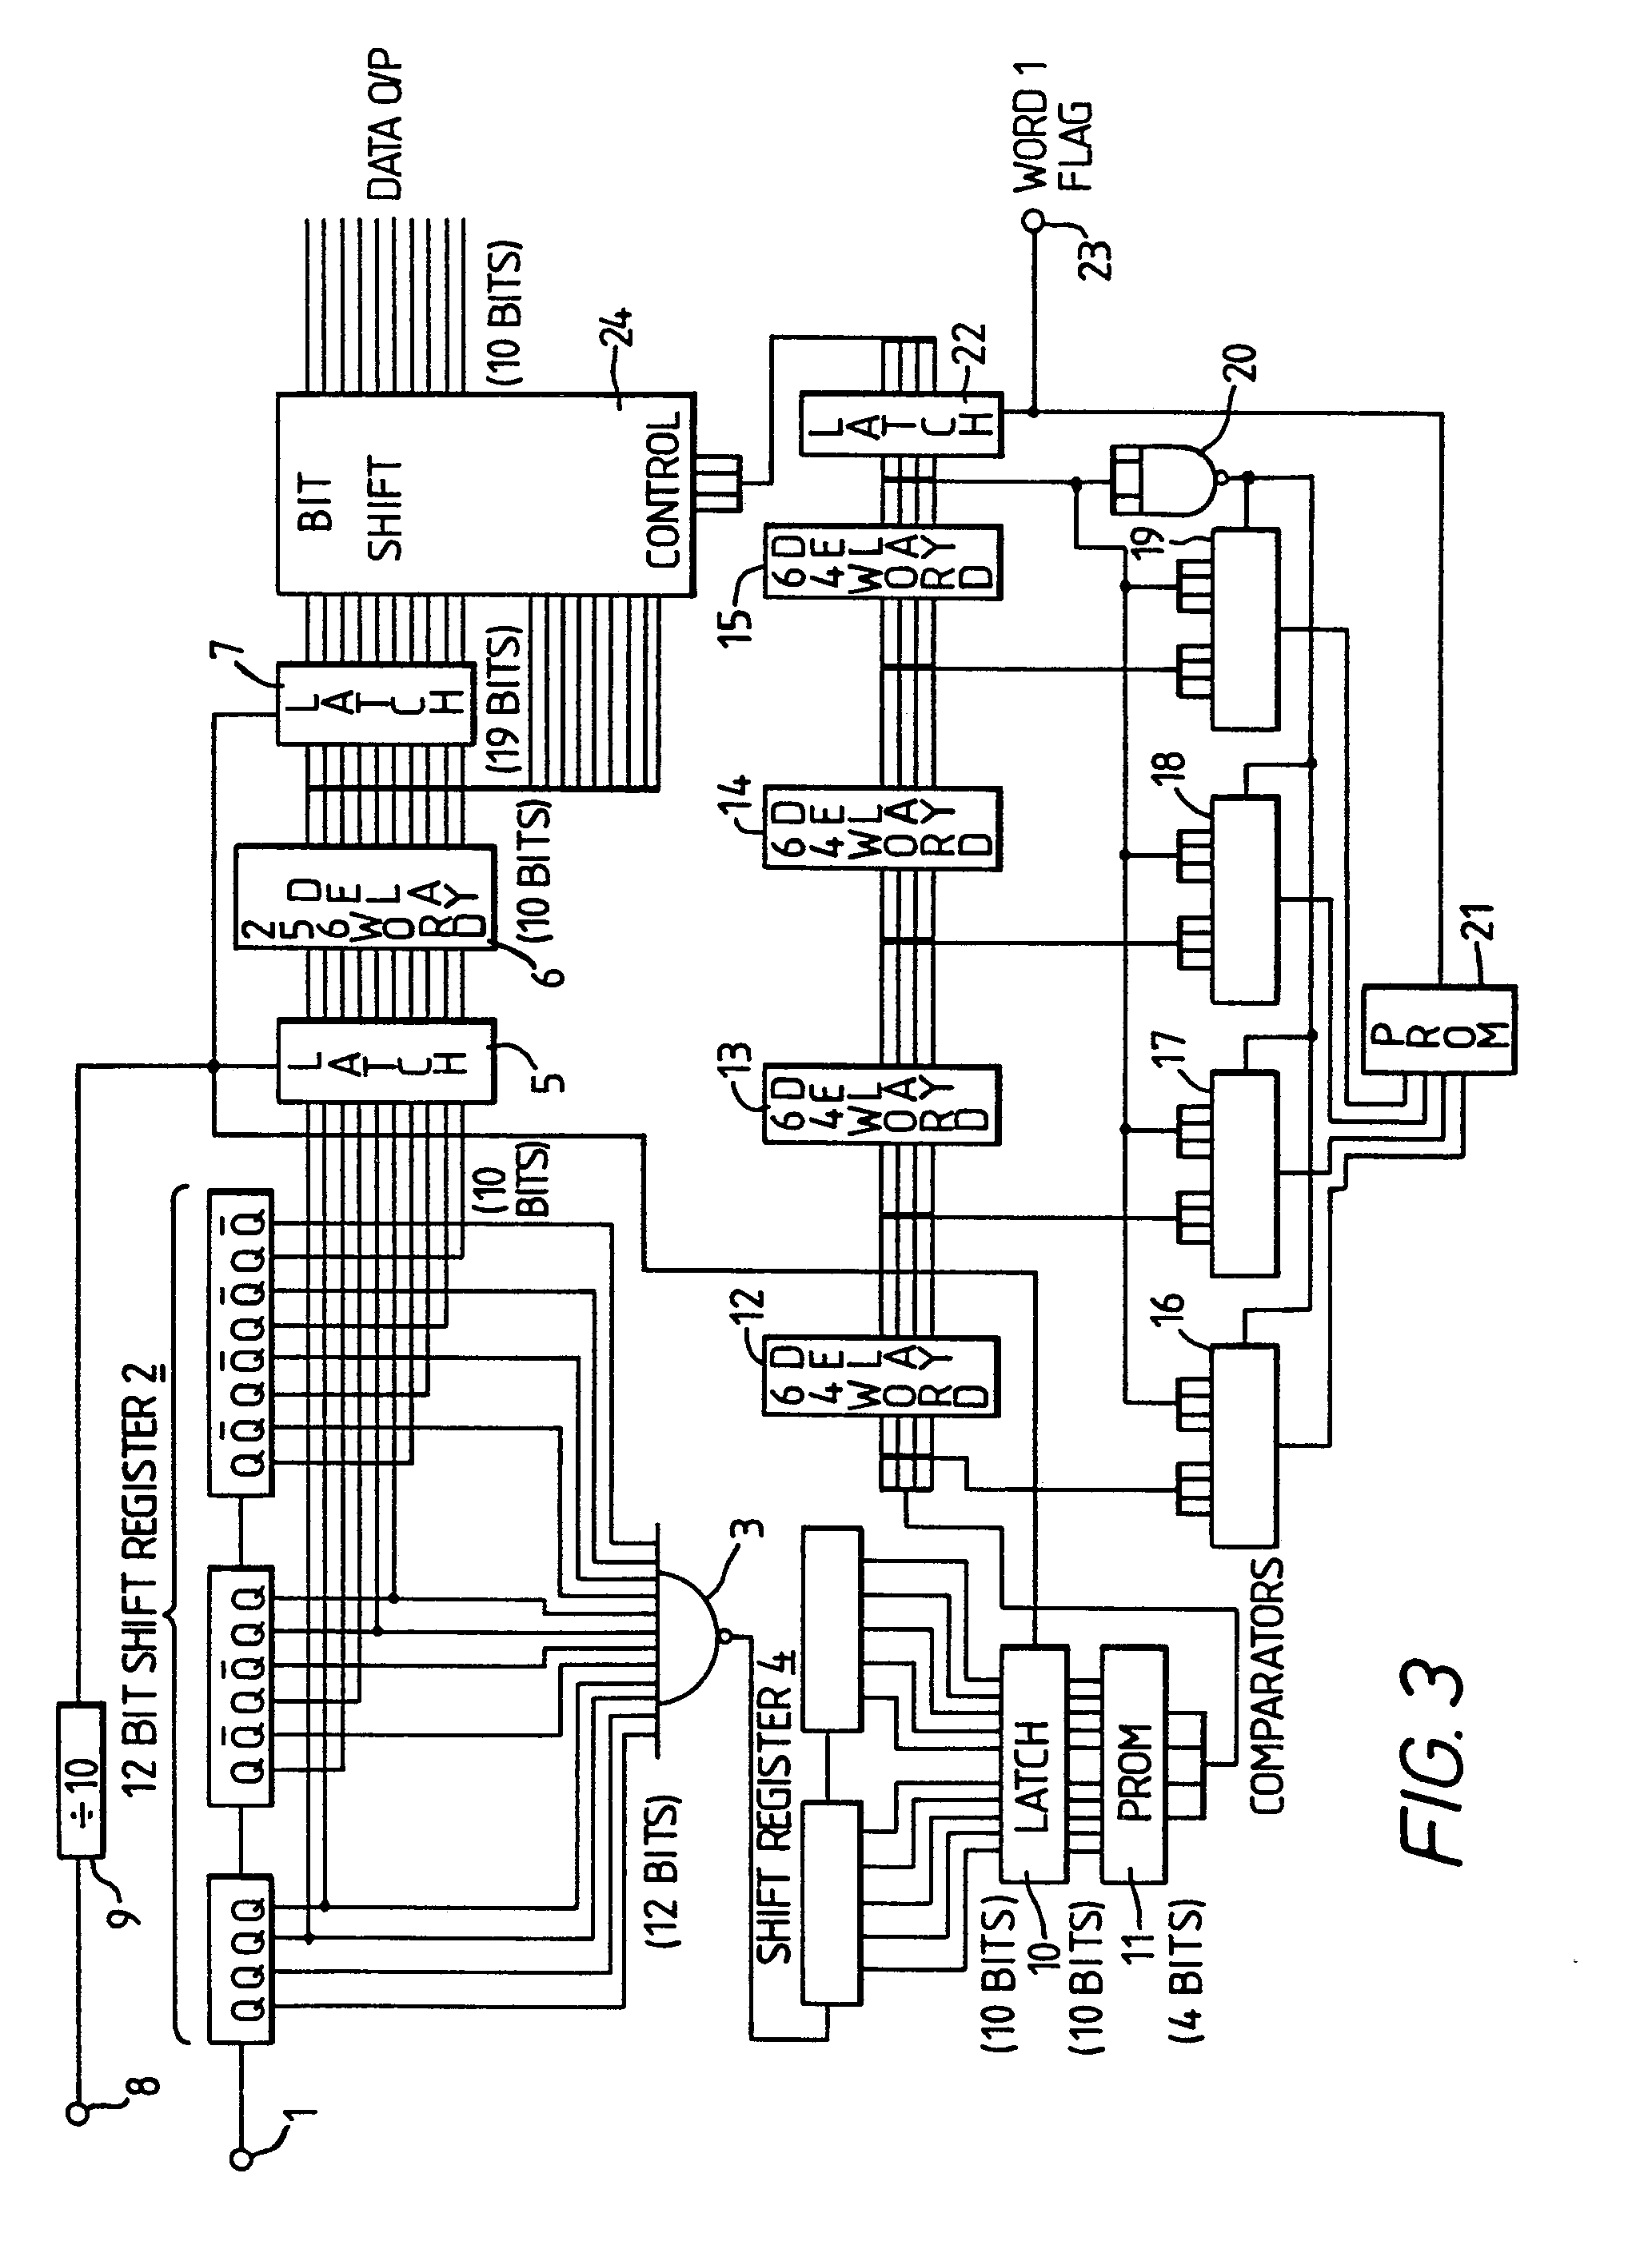 Patent Ep0052432a2 Digital Signal Processing Google Patents Circuit Diagram Of 4 Bit Comparator Drawing